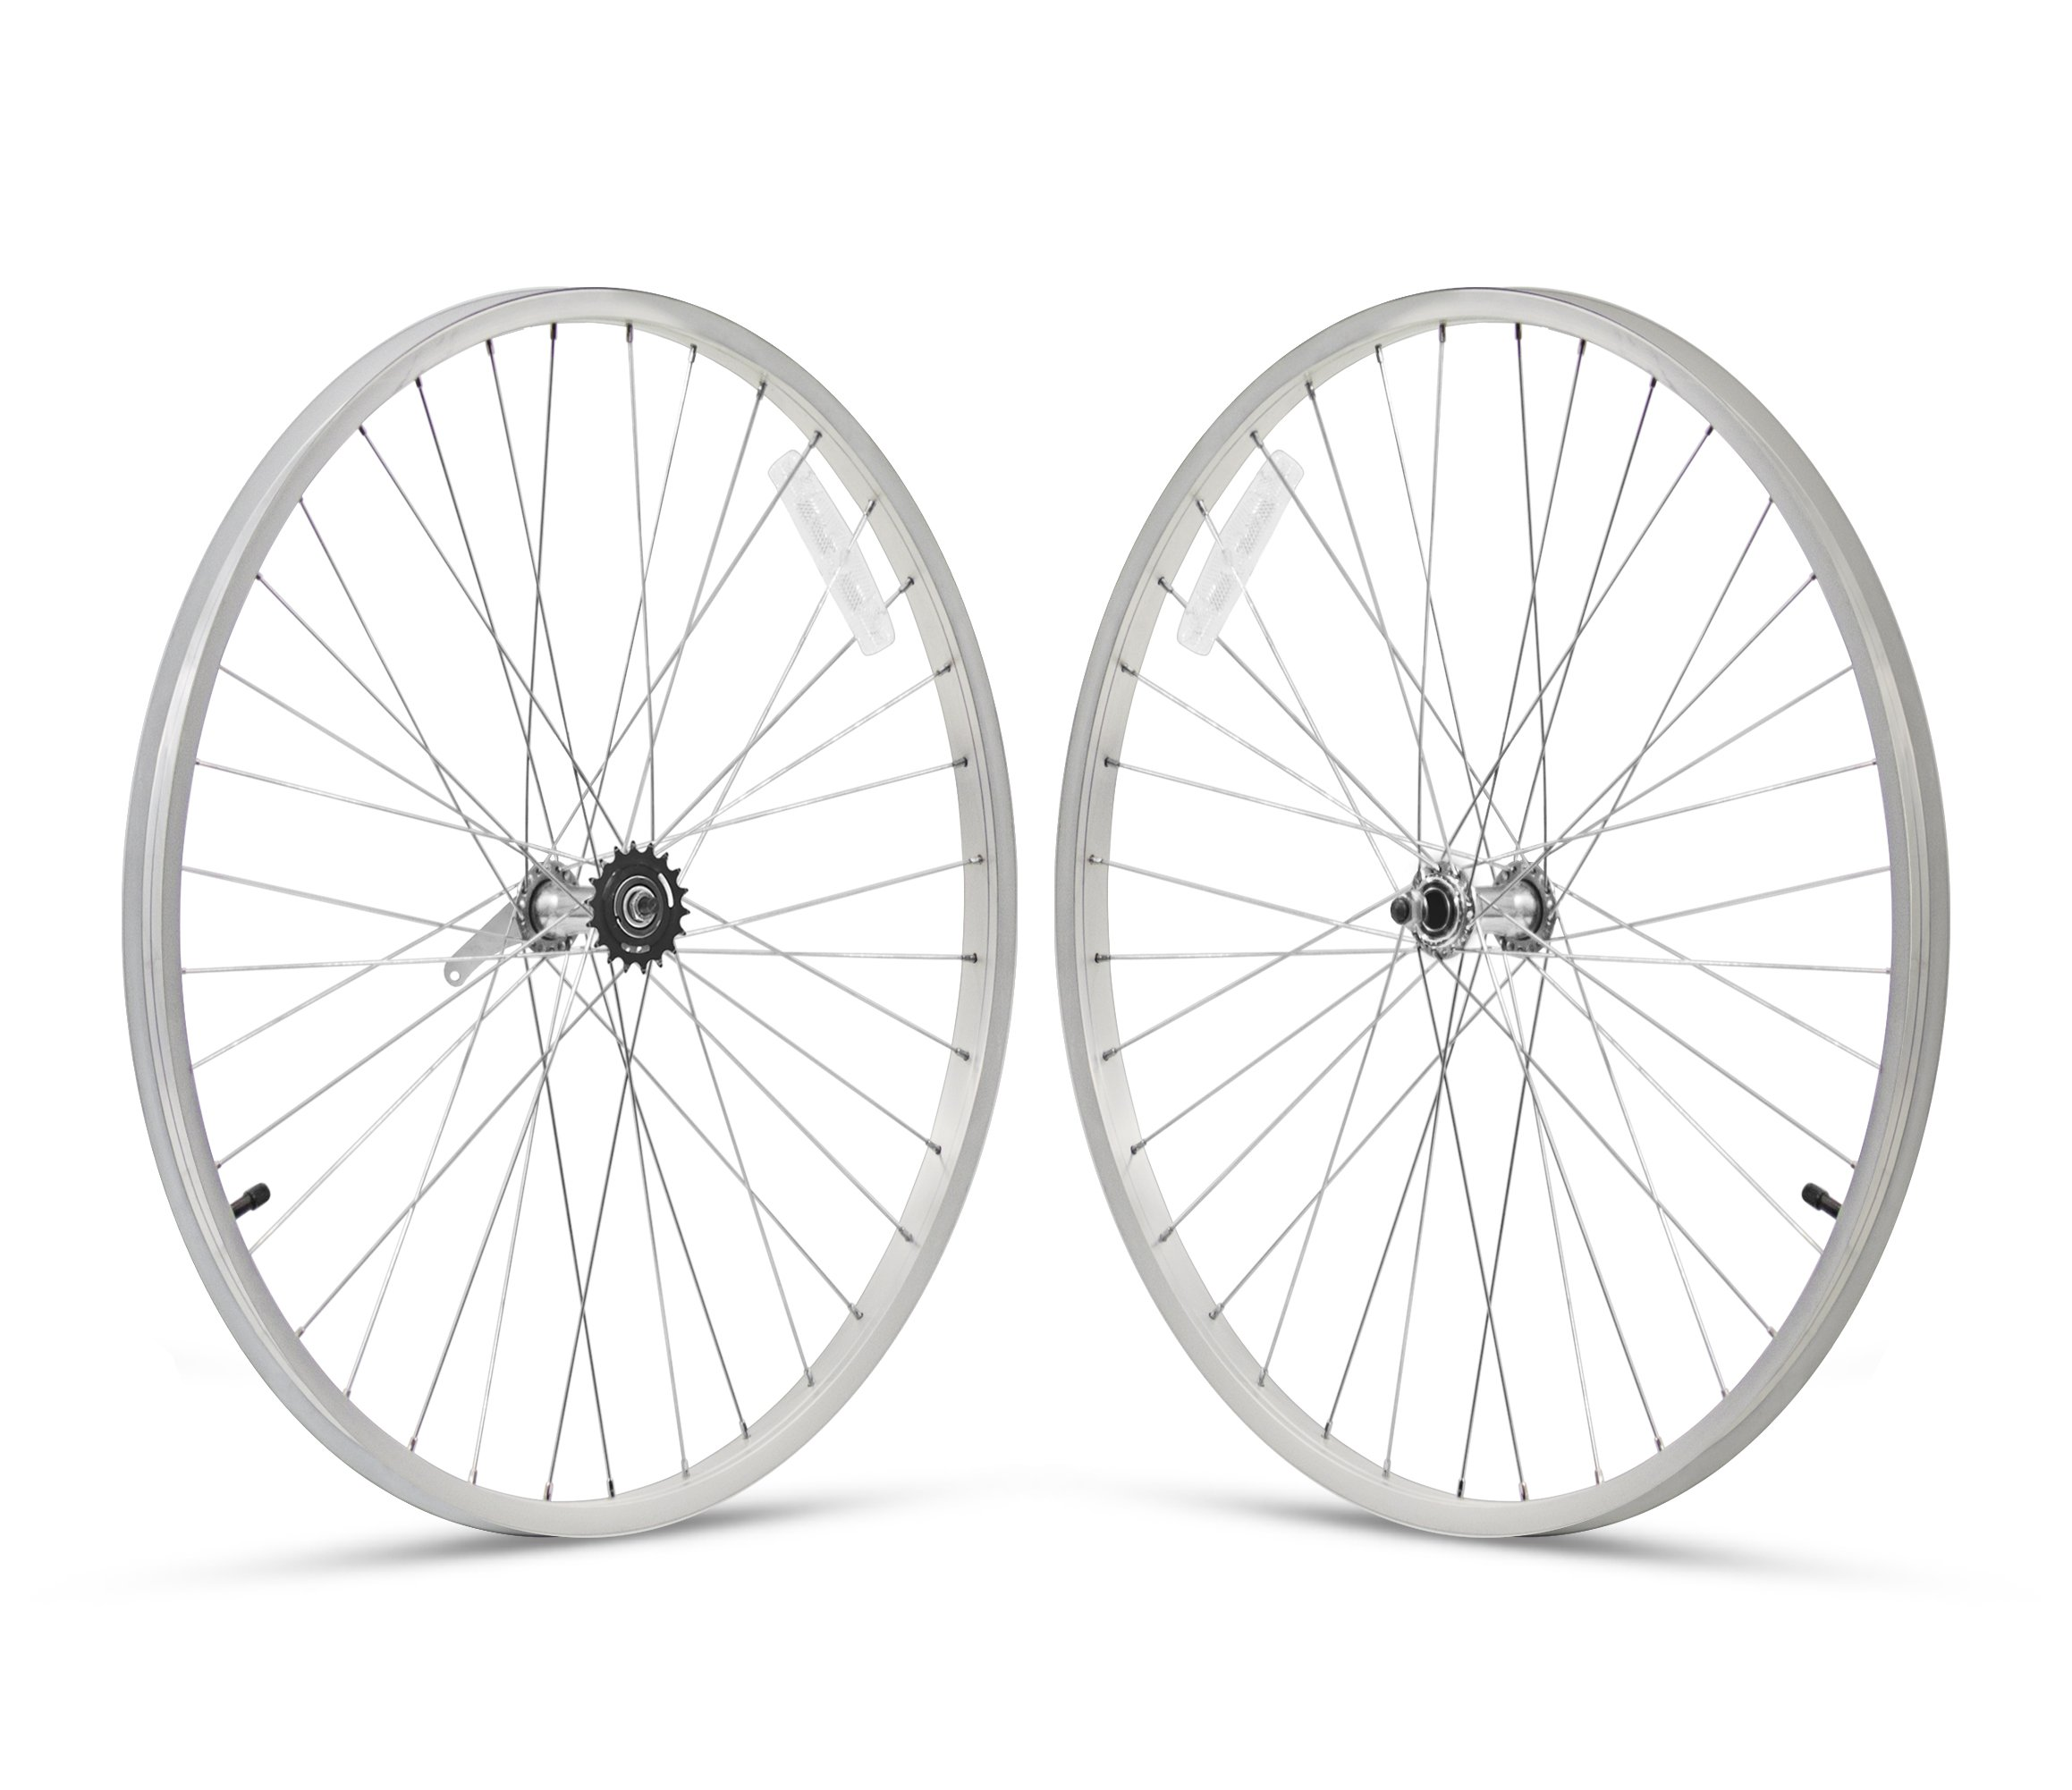 Firmstrong 1-Speed Beach Cruiser Bicycle Wheelset, Front/Rear, Silver, 26'' by Firmstrong